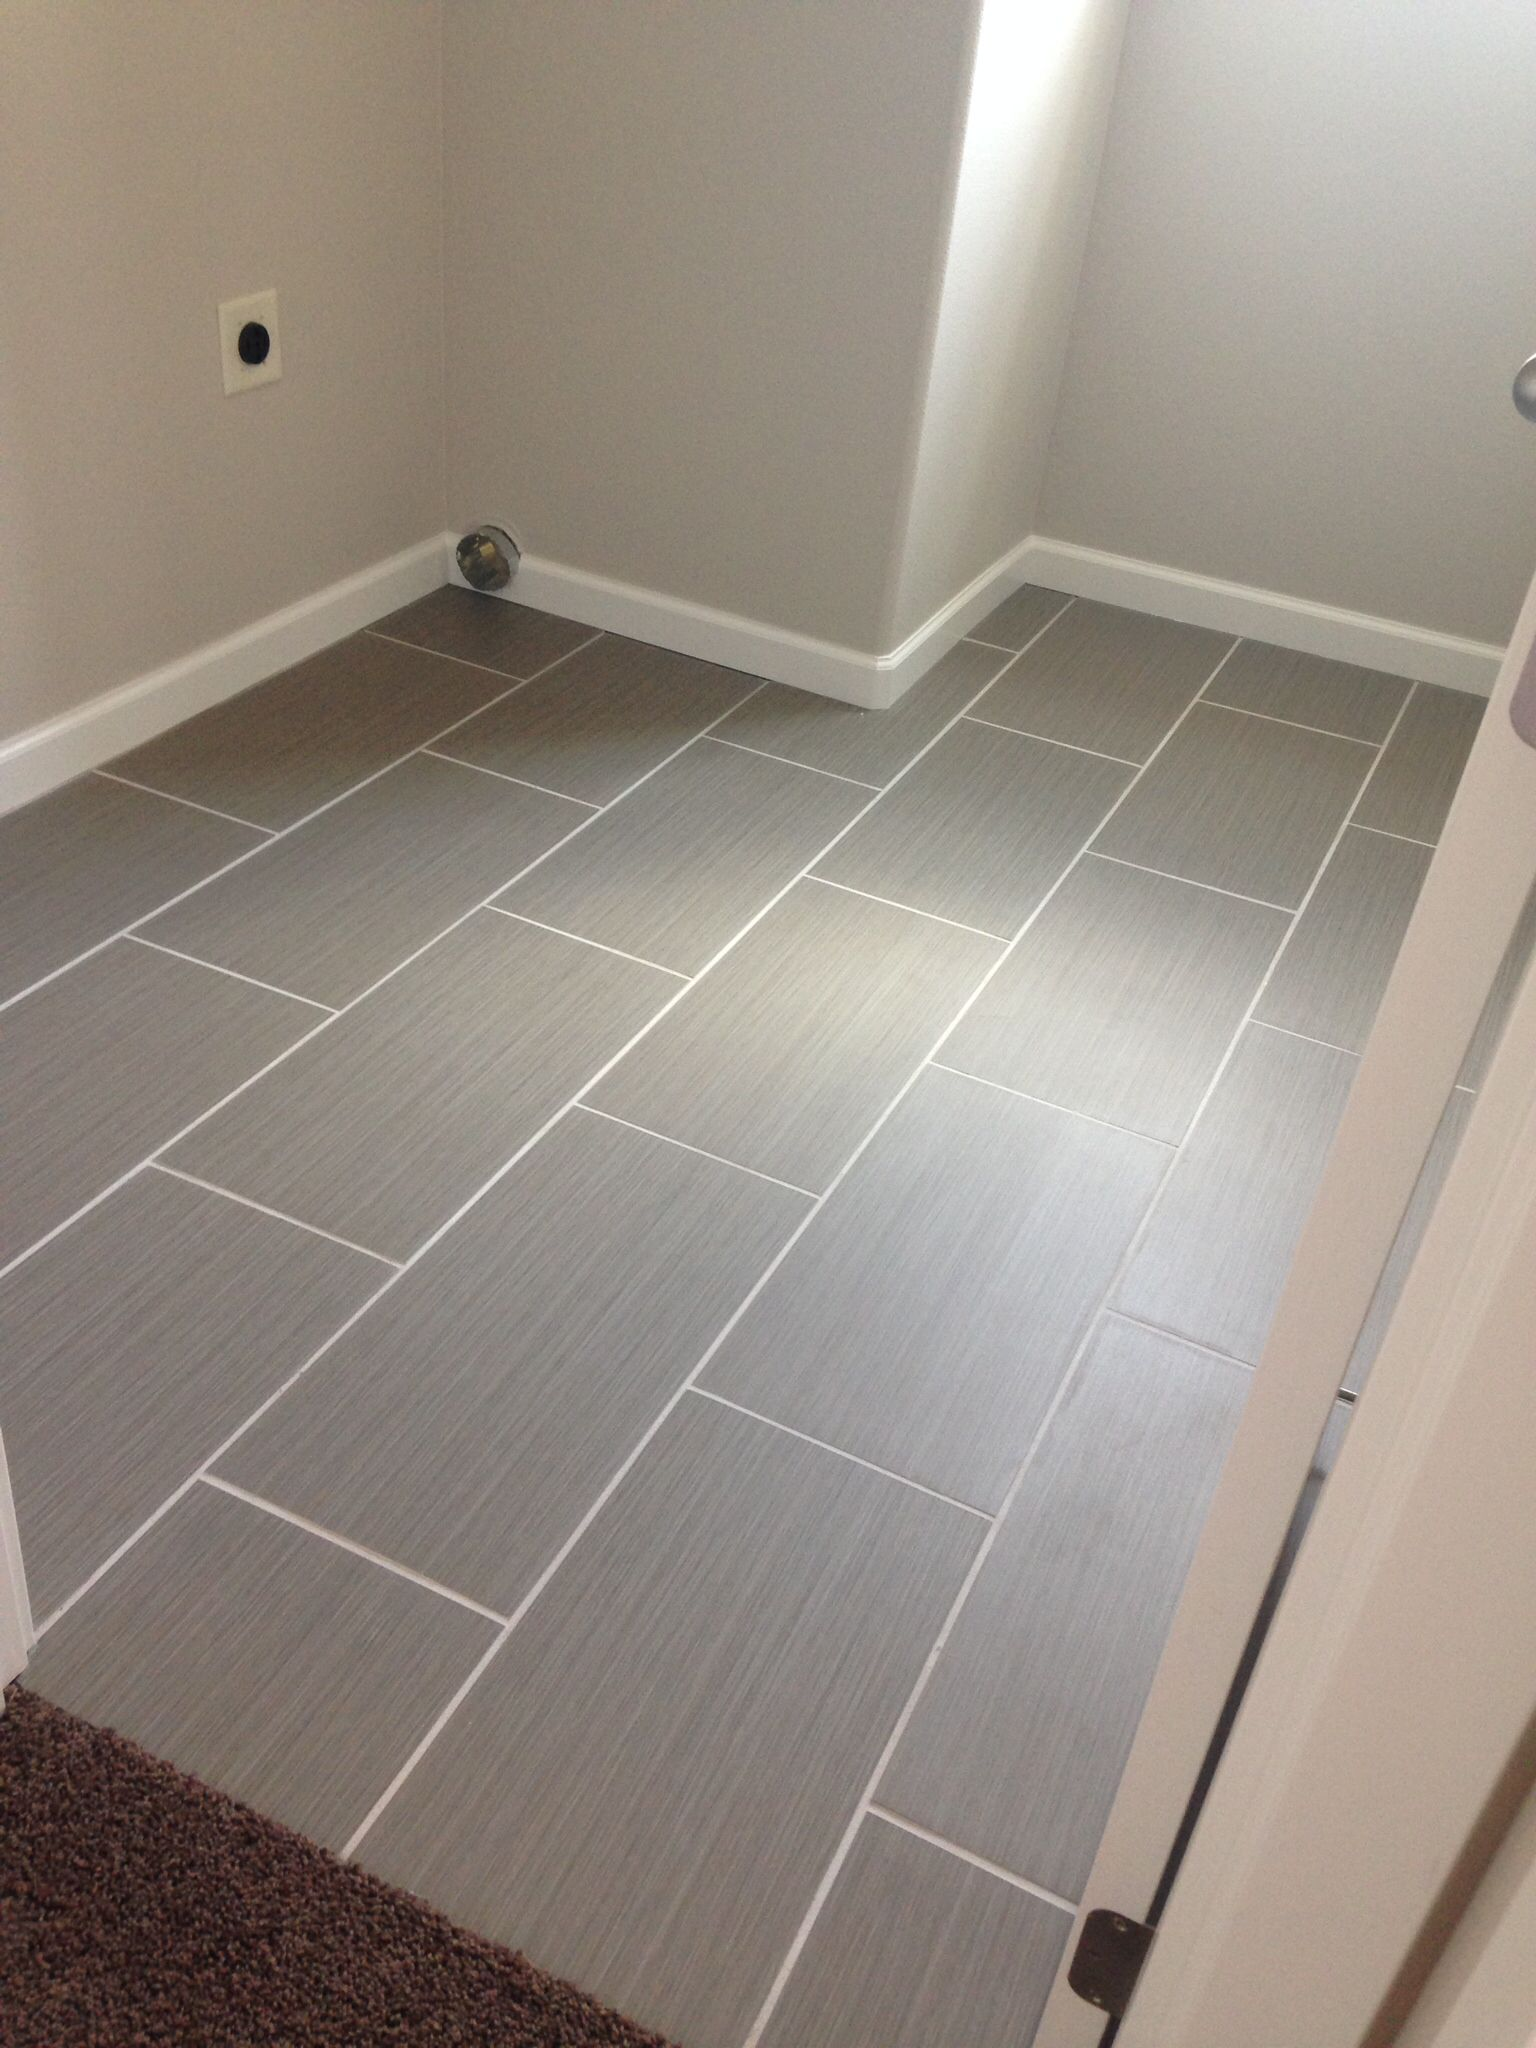 Bathroom Tiles Design Grey : Gray tile from costco neo porcelain